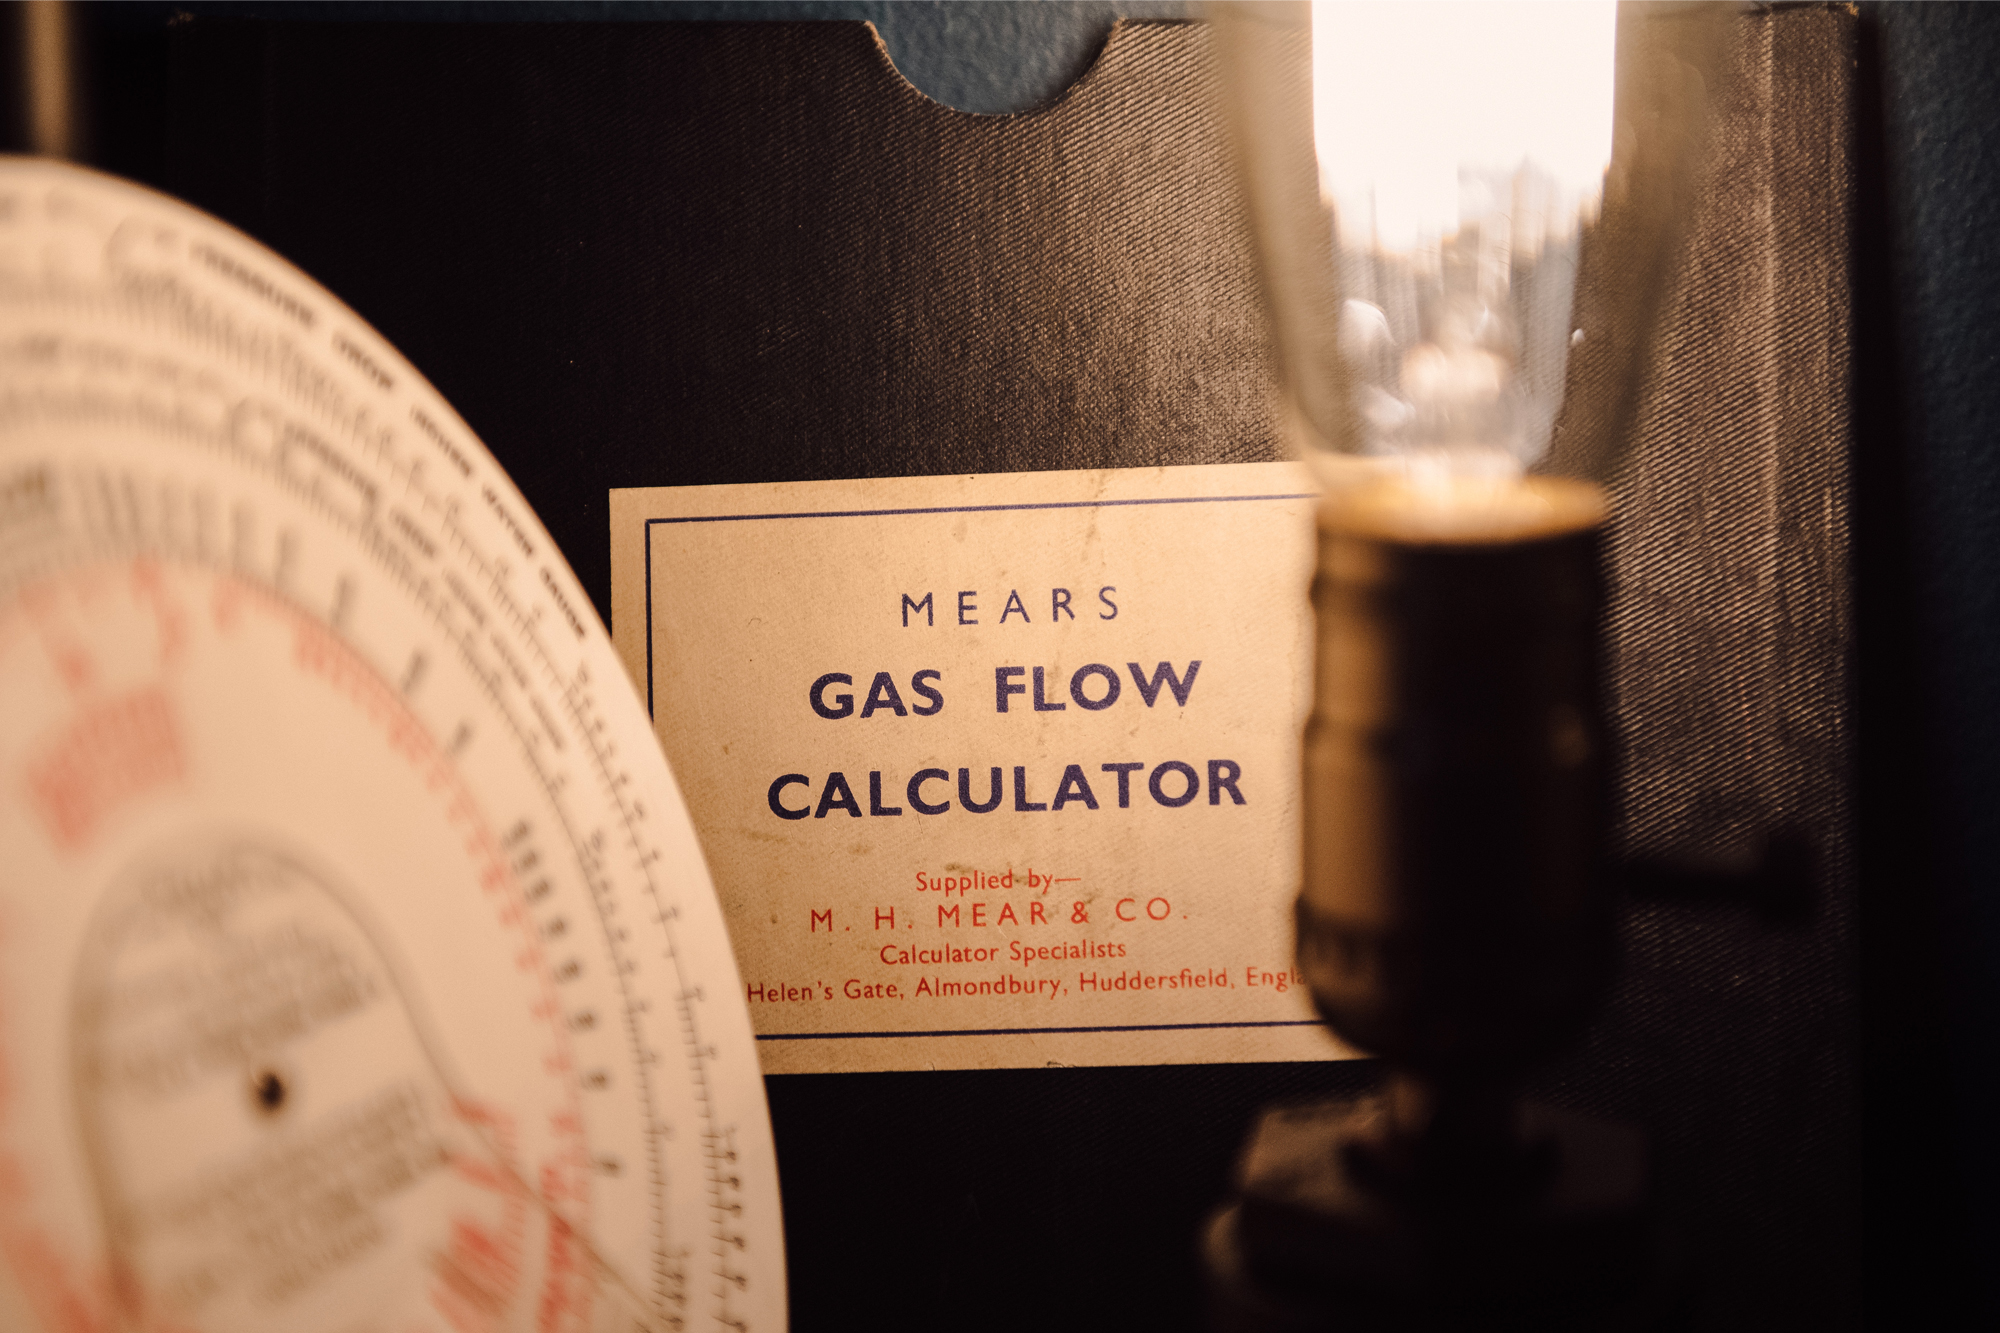 M. H. Mears and Co. Gas Flow Calculator